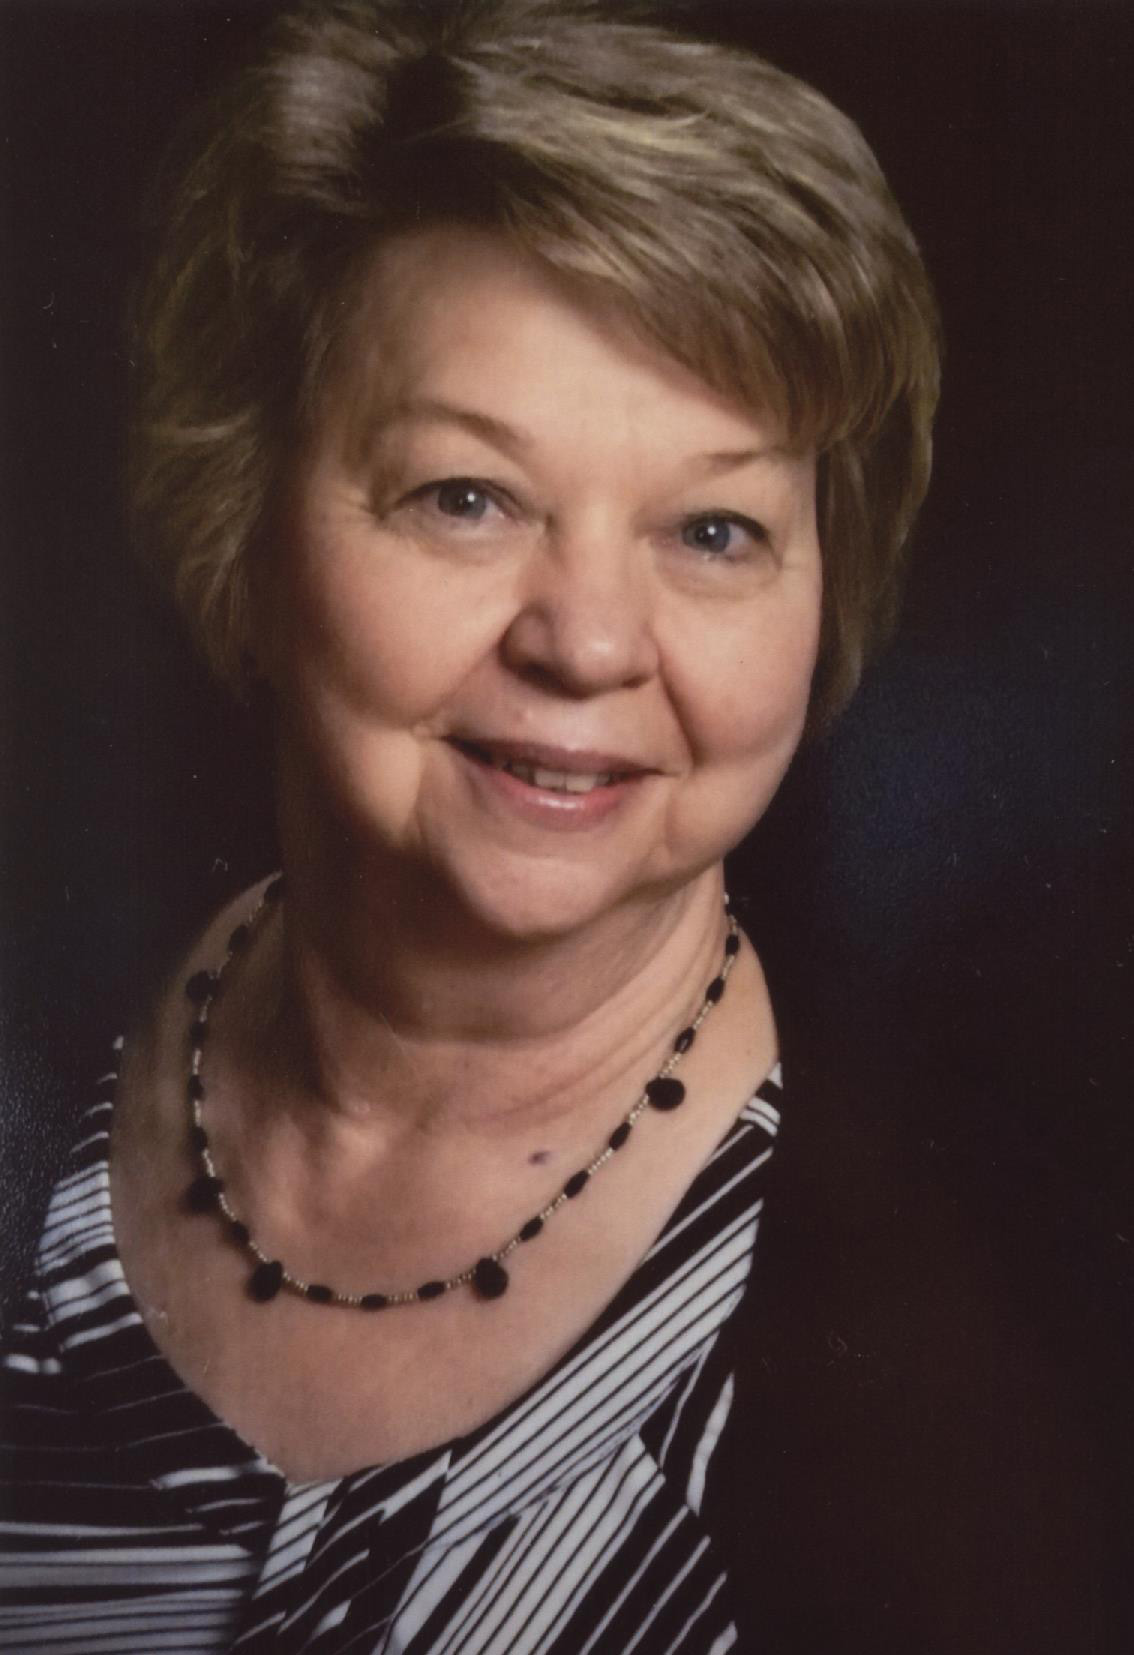 Irma A. Borman, age 67, of Ferdinand